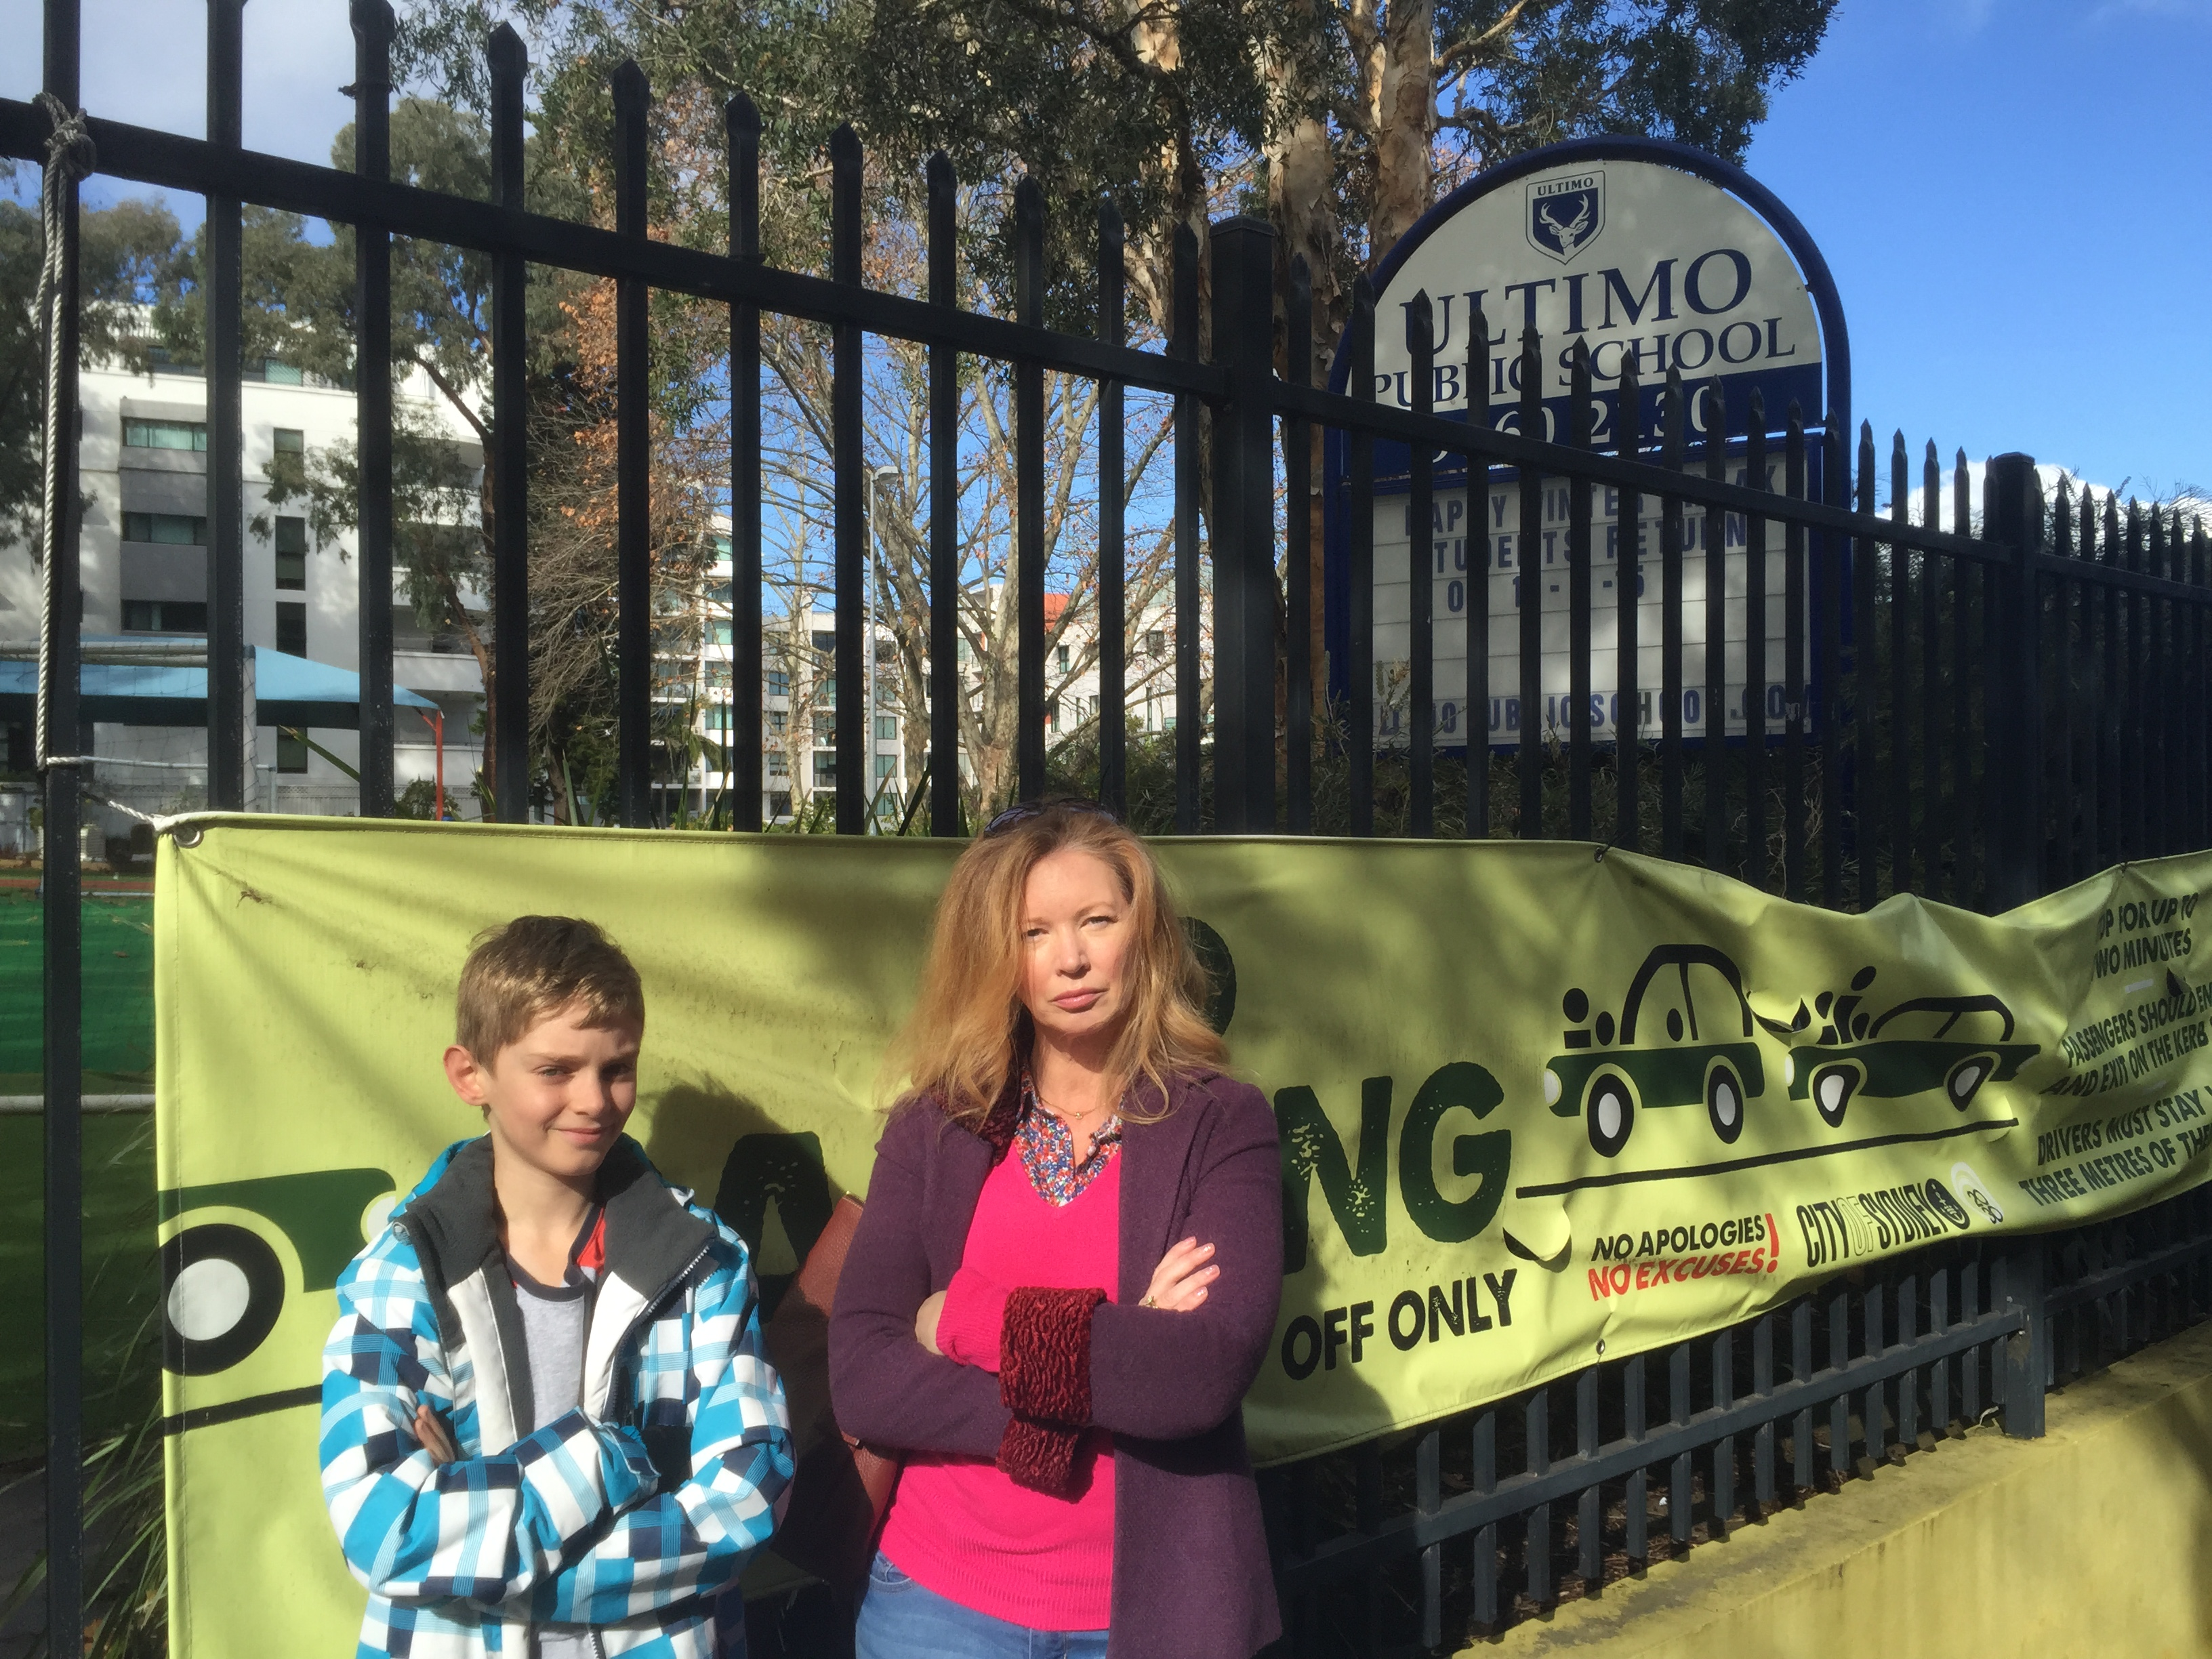 Ultimo Public School questions left 'unanswered'